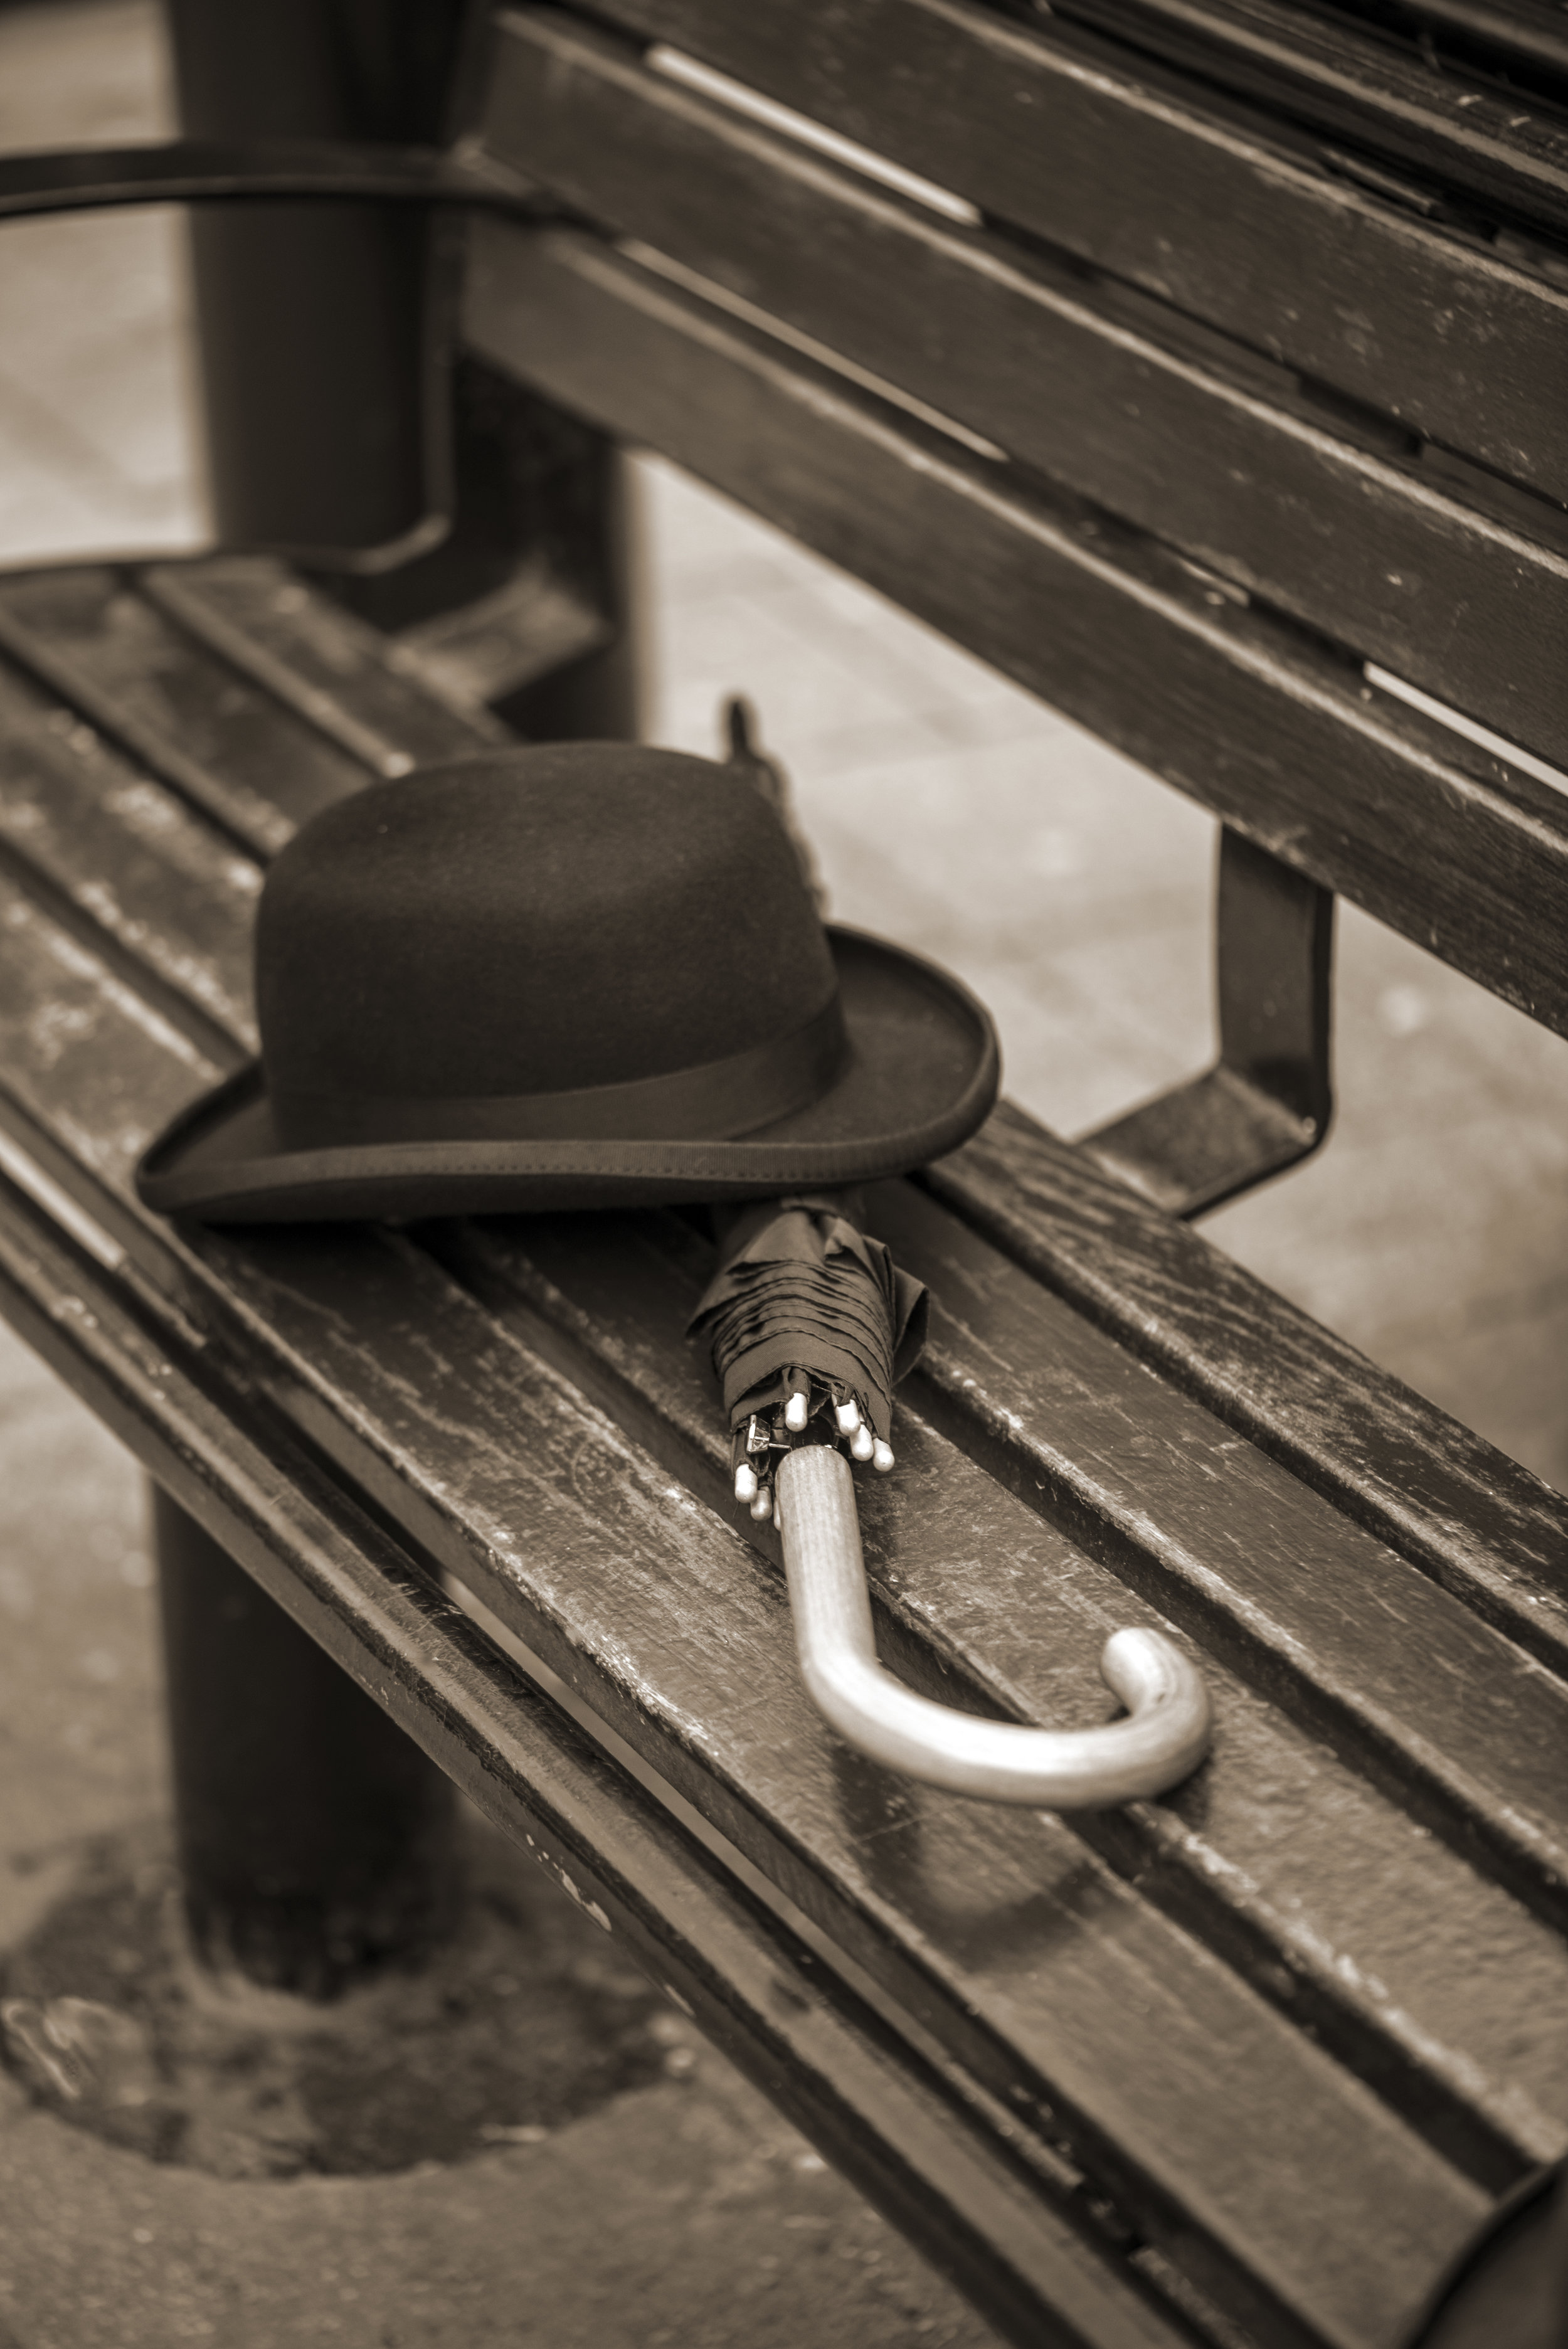 Bowler and brolly on bench Hereford.jpg